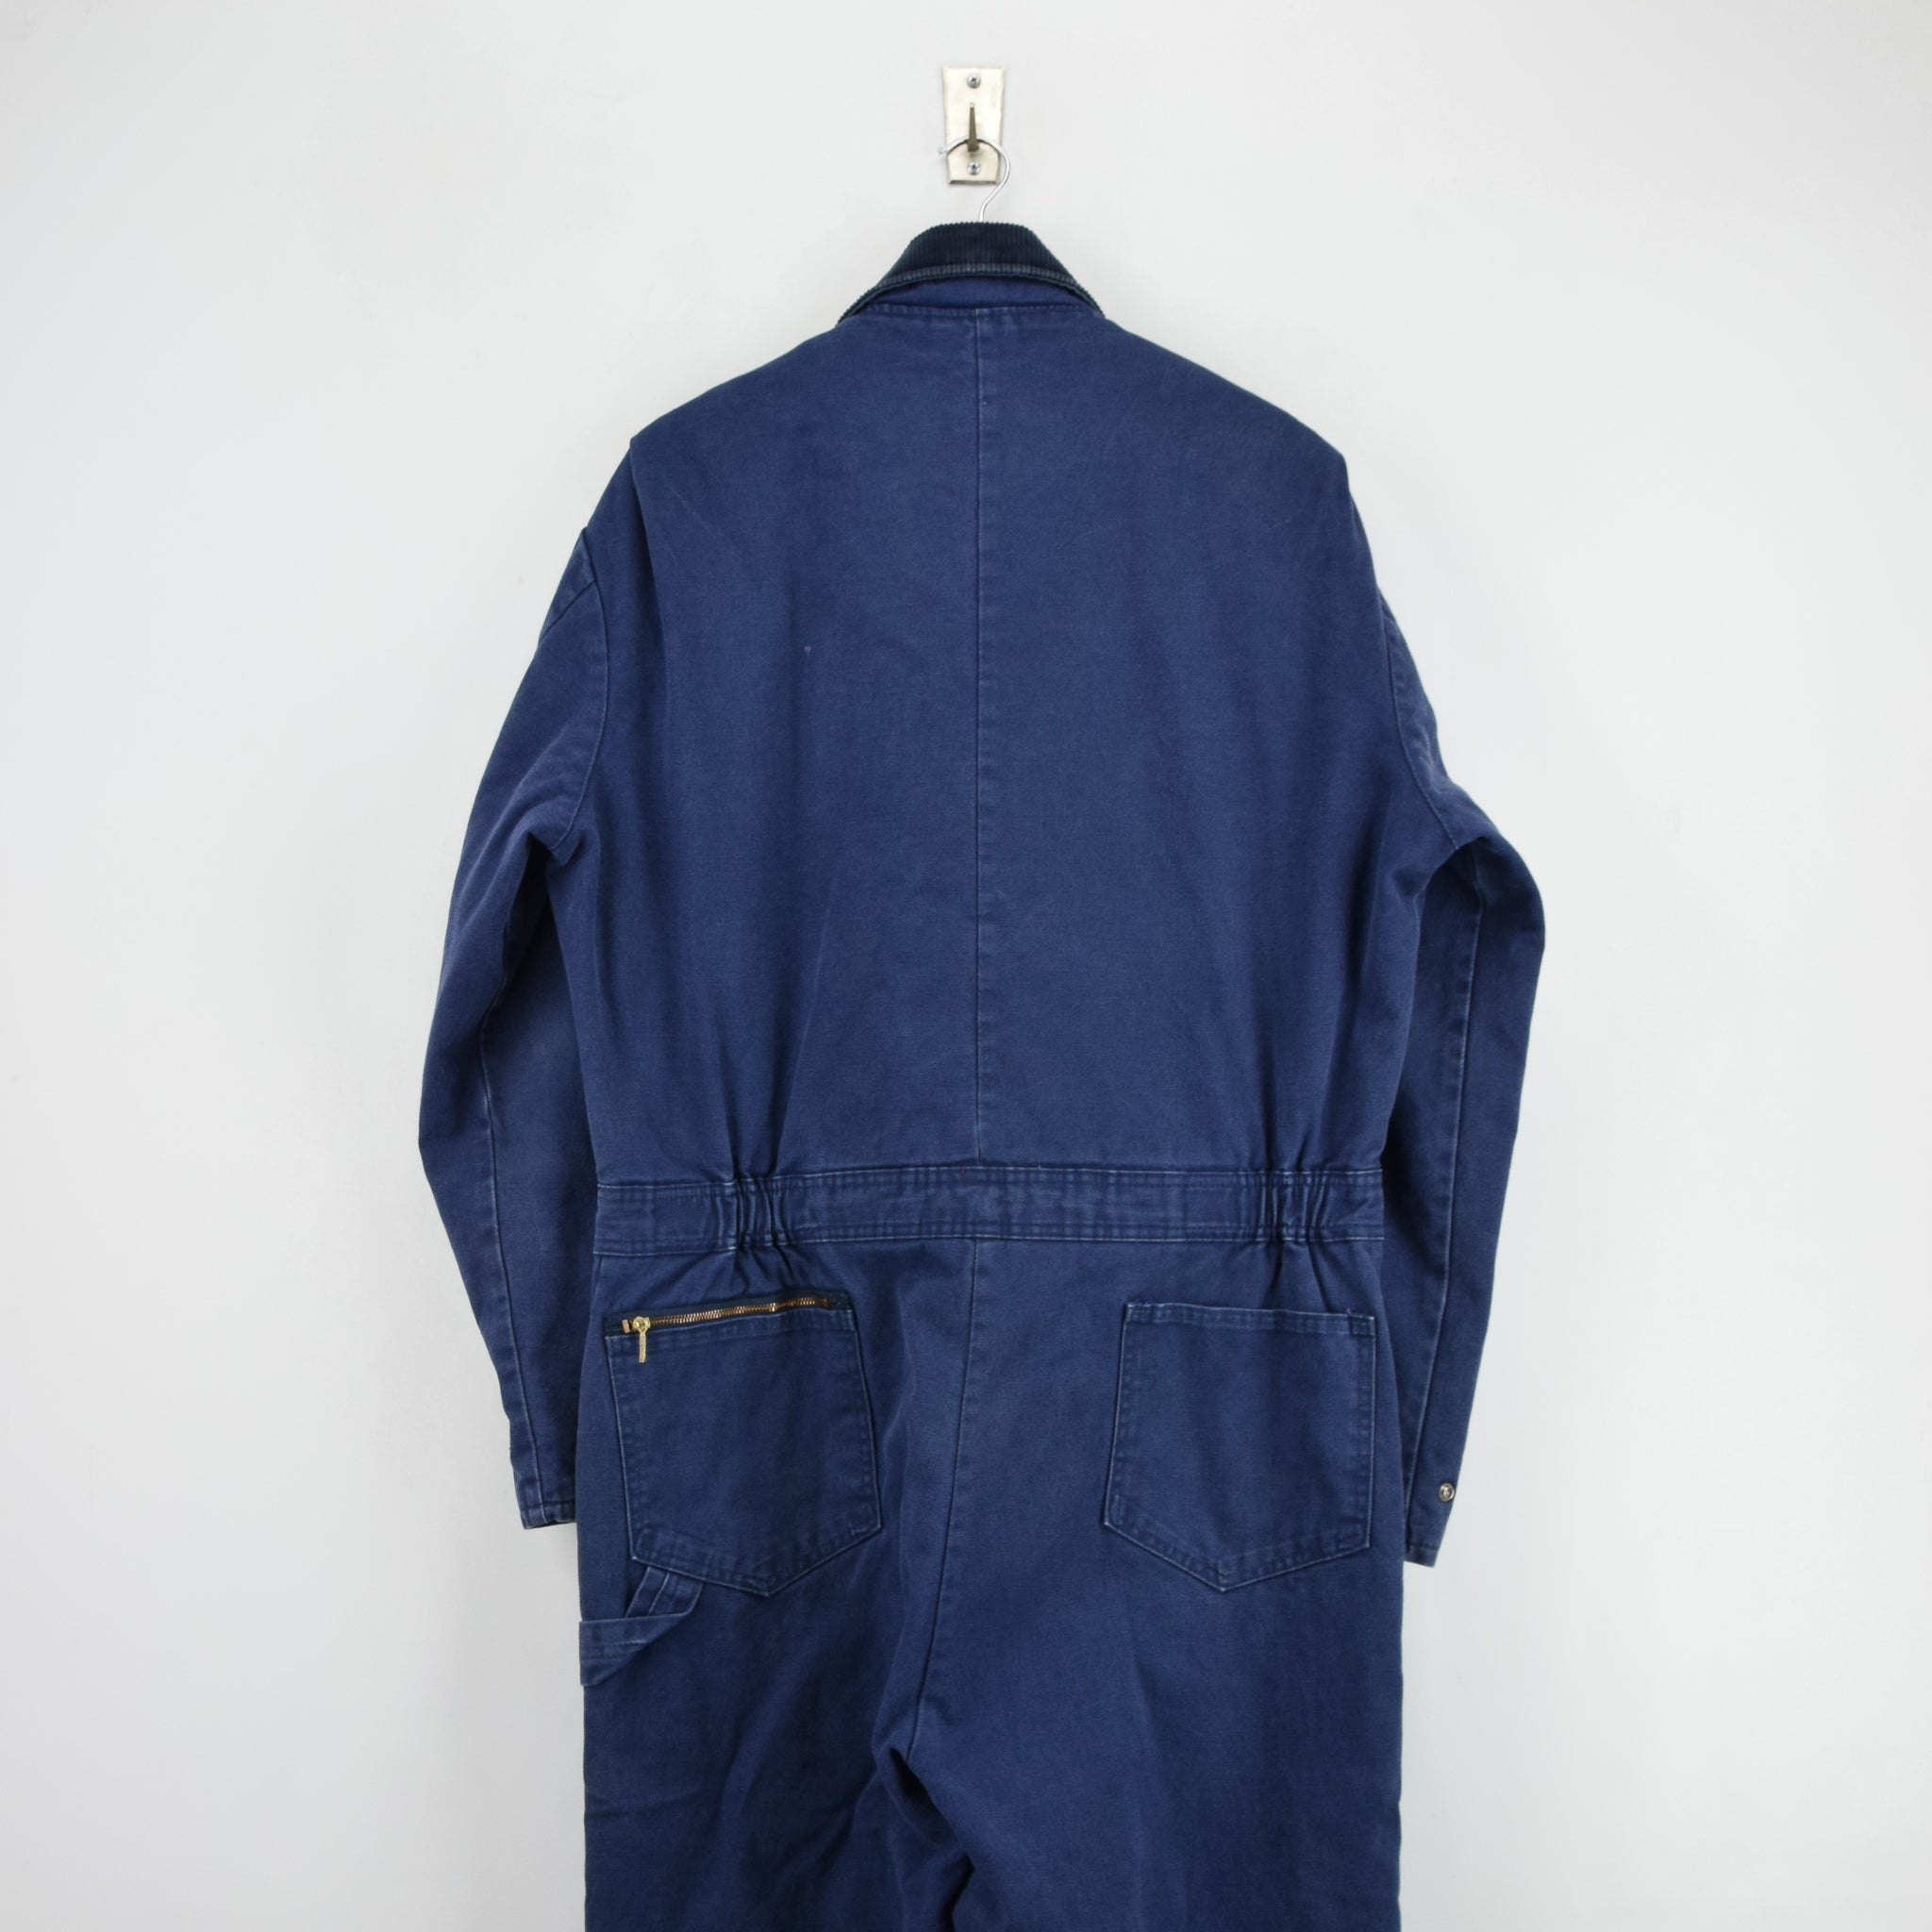 Vintage Walls Zero Zone Workwear Coverall Insulated Overalls Made in USA L back